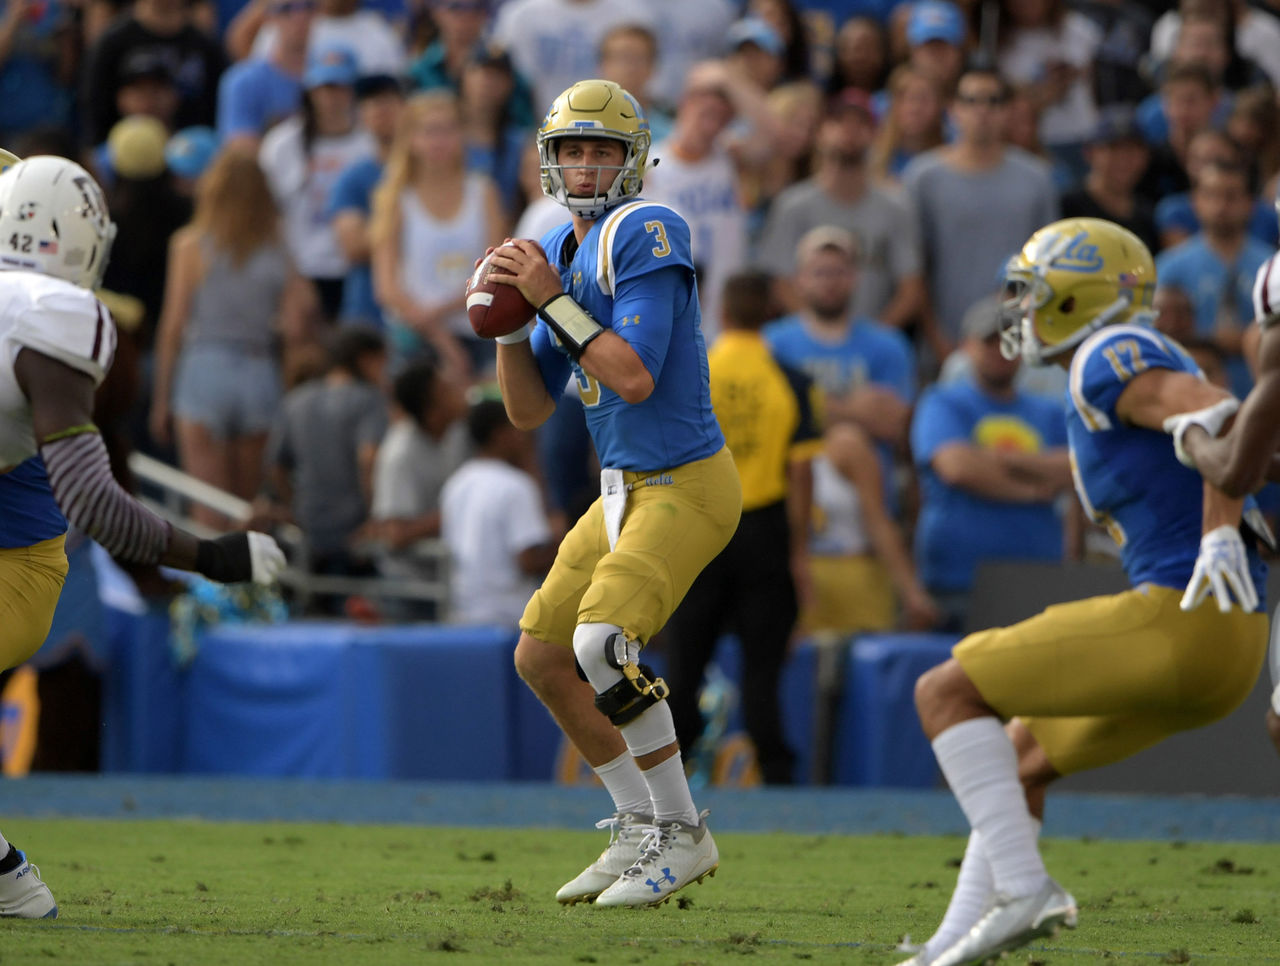 Cropped_2017-09-04t012602z_698160675_nocid_rtrmadp_3_ncaa-football-texas-a-m-at-ucla